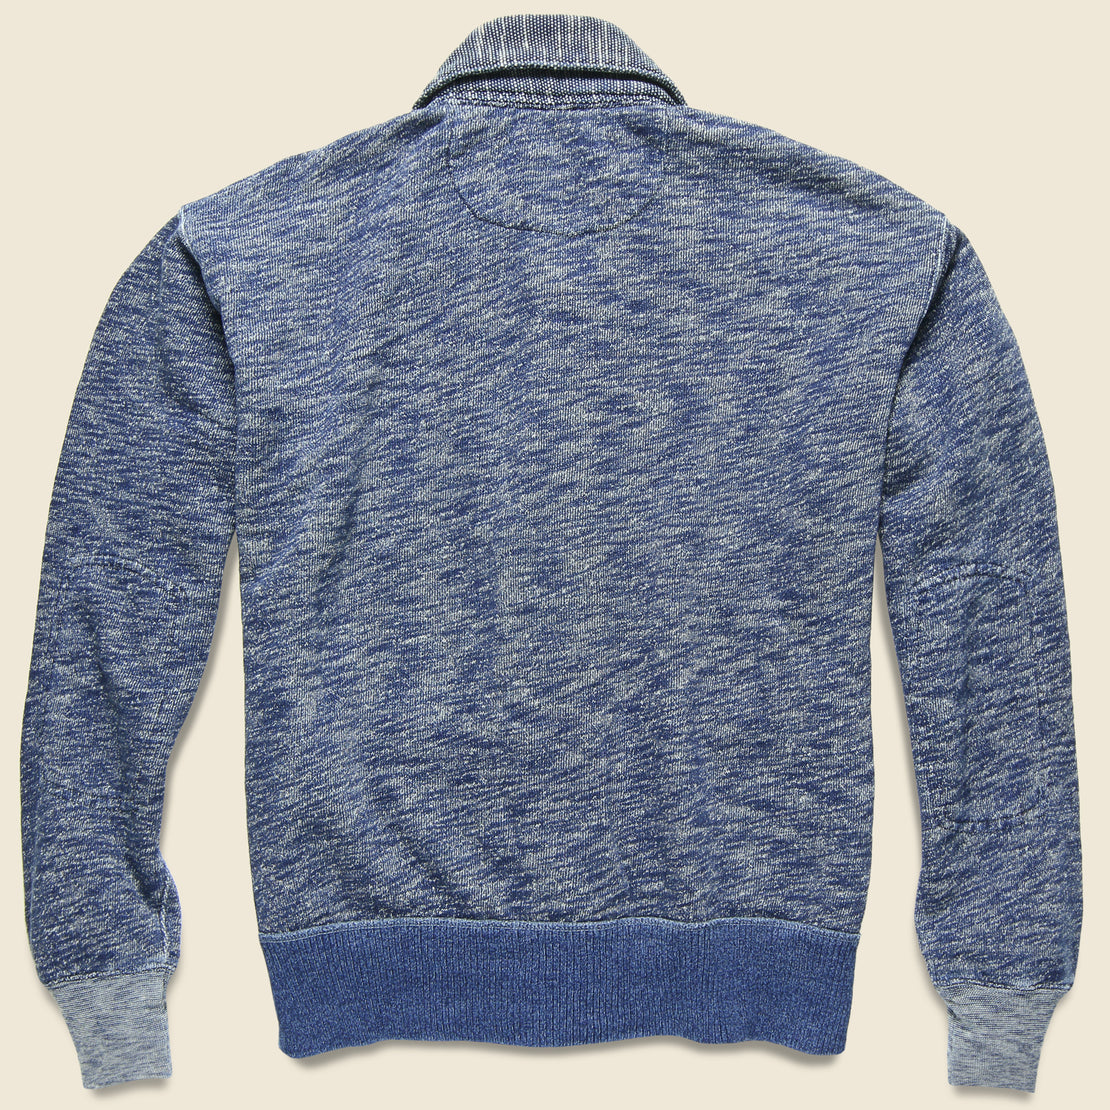 Vintage Fleece Coach Cardigan - Indigo Heather